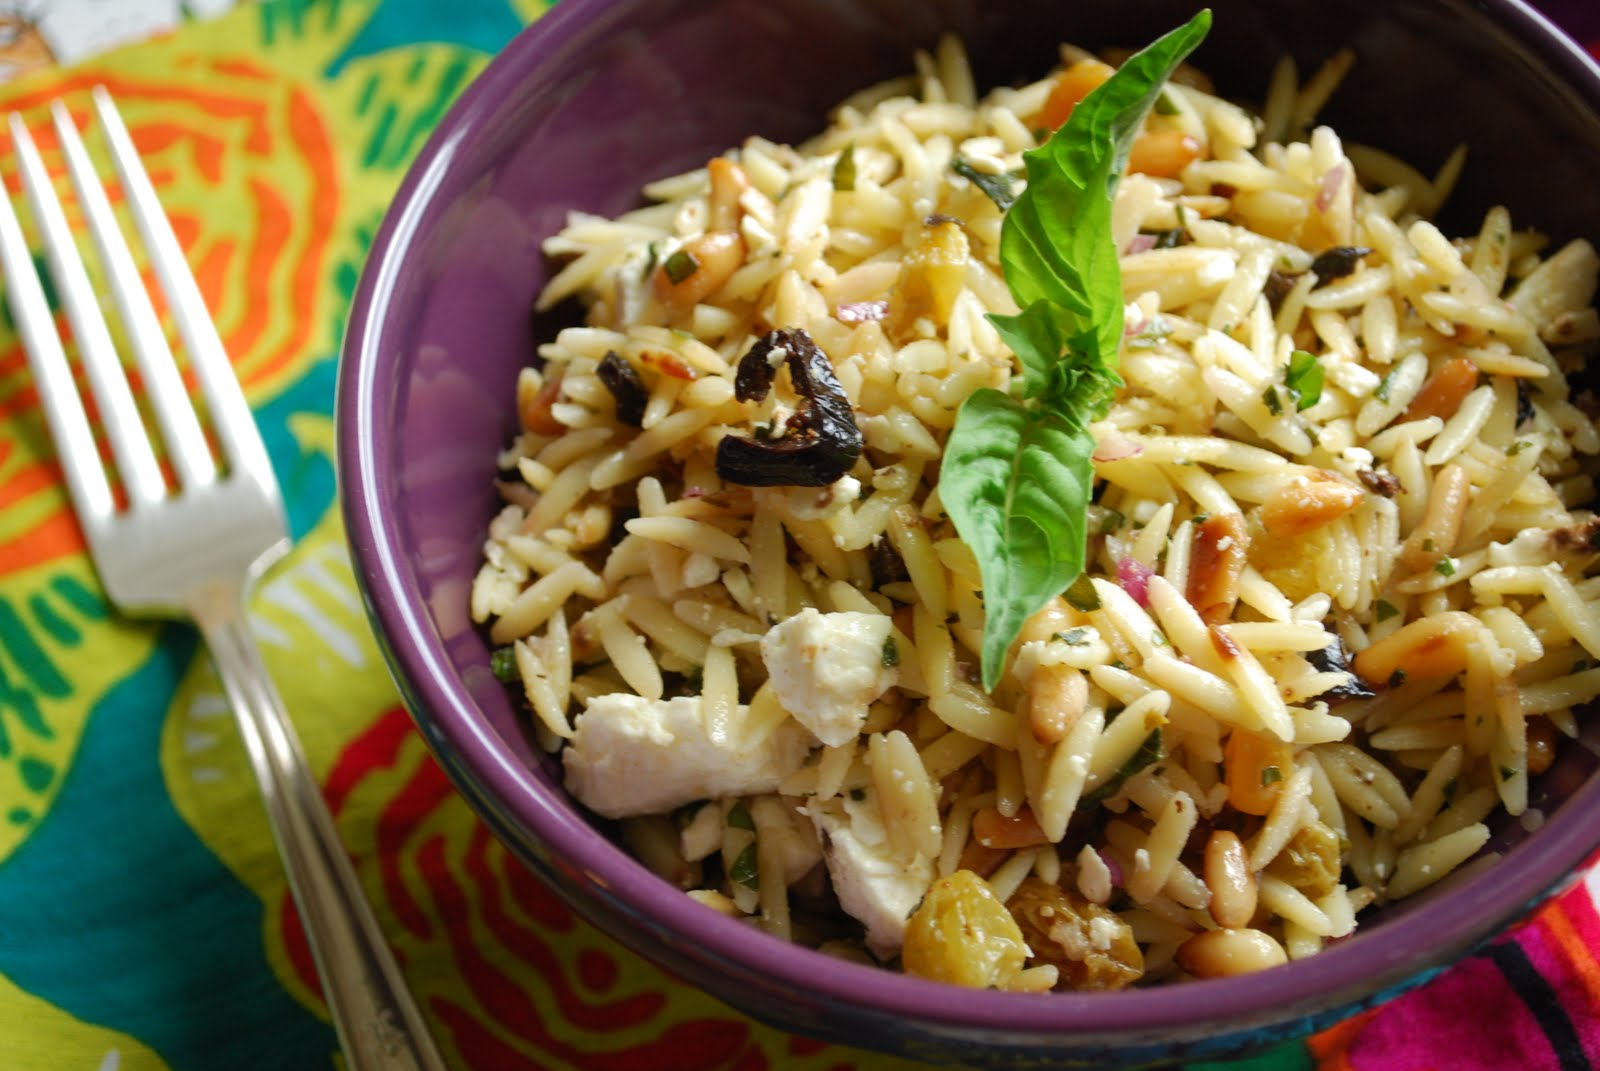 ... , vacation day...and orzo salad with lemon, feta and pine nuts